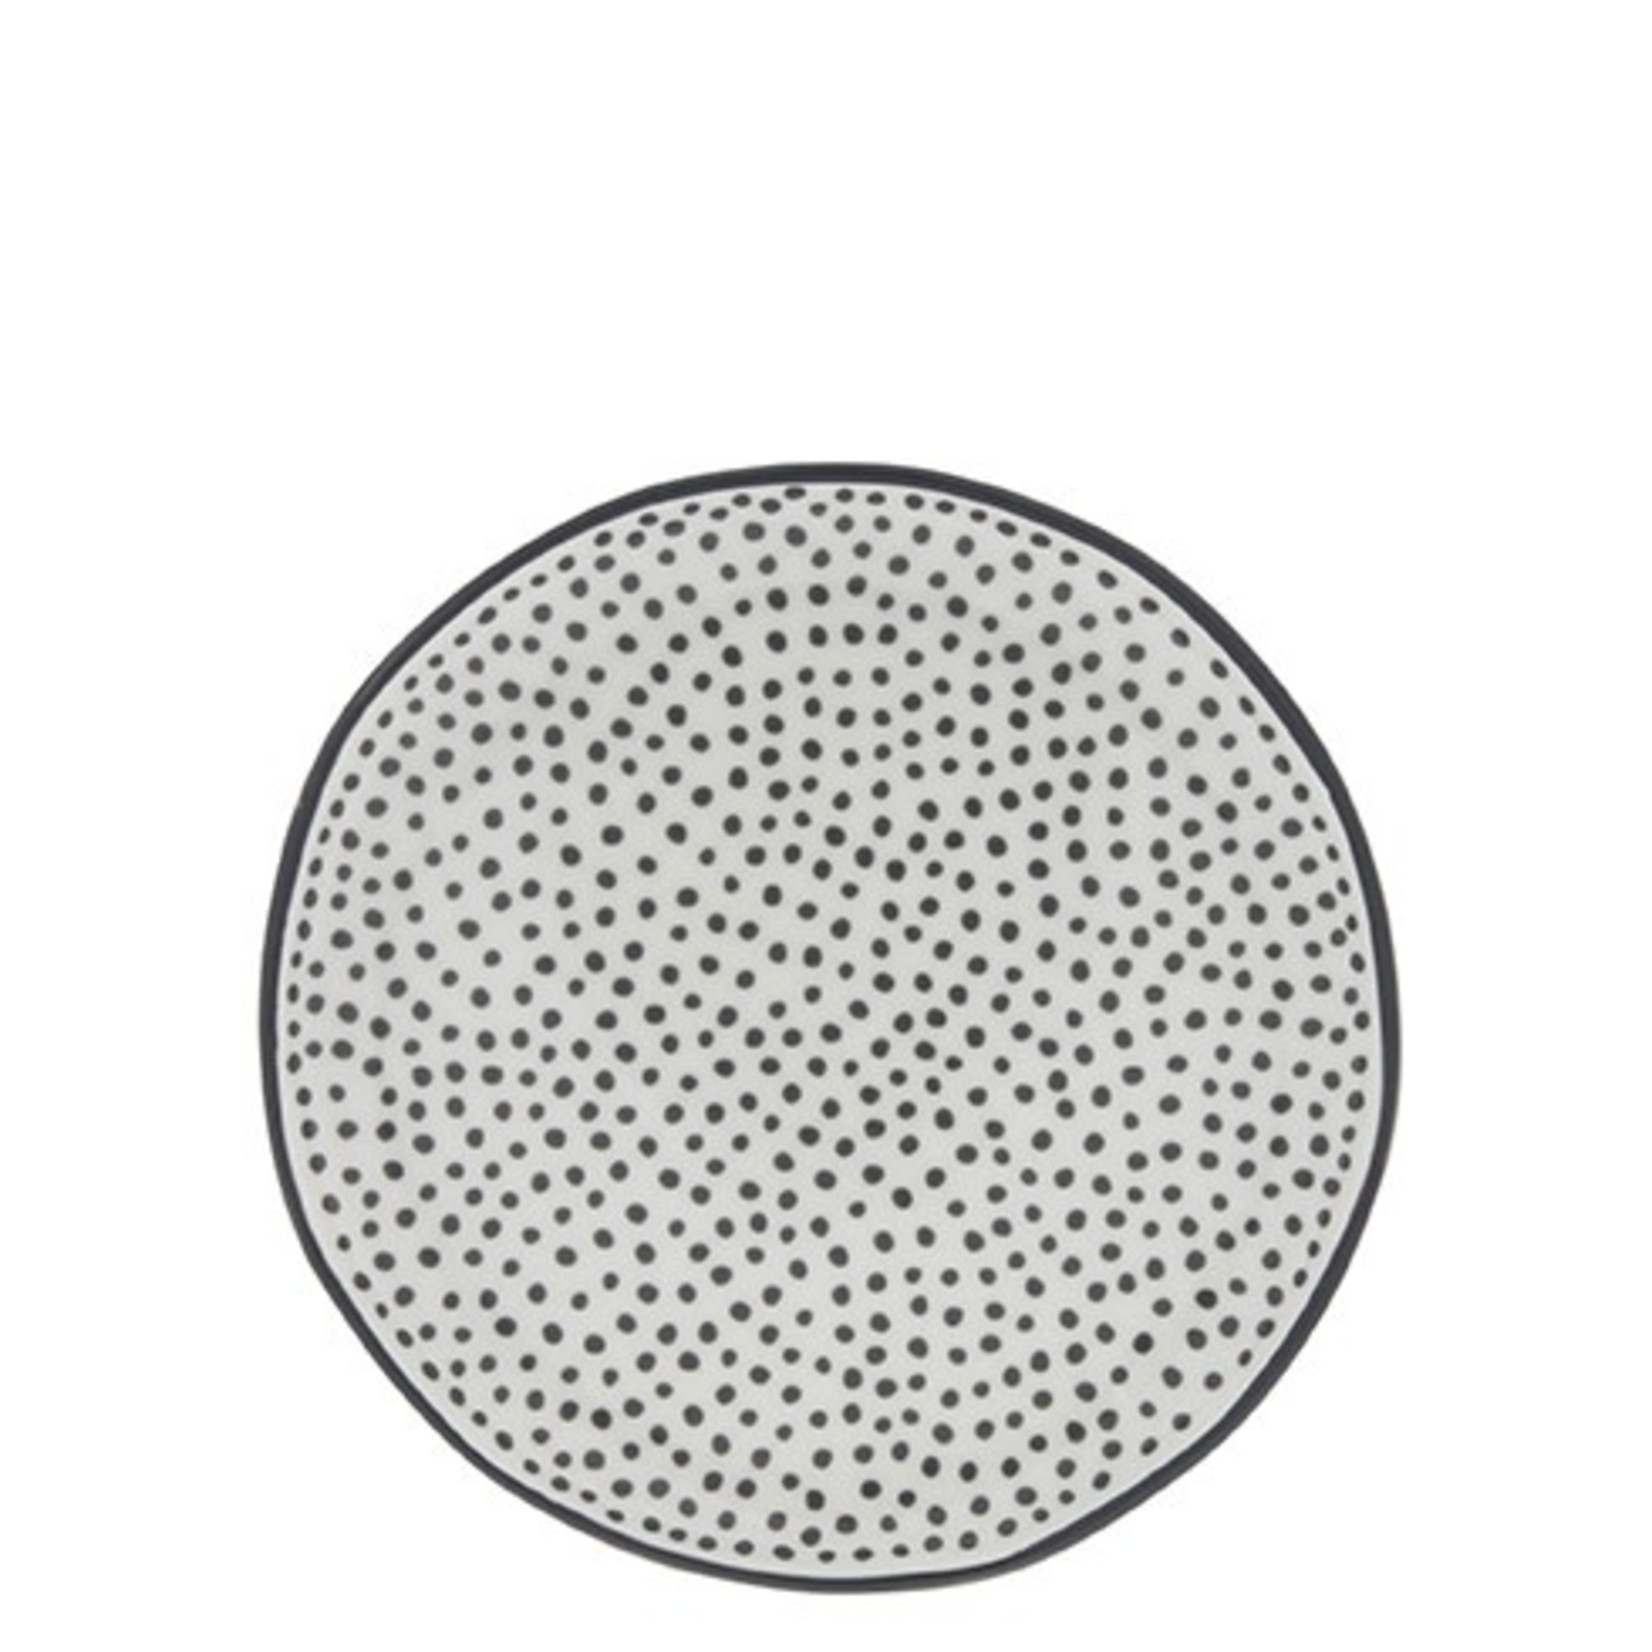 Bastion Collections Cake Plate 16cm White Little Dots in Black